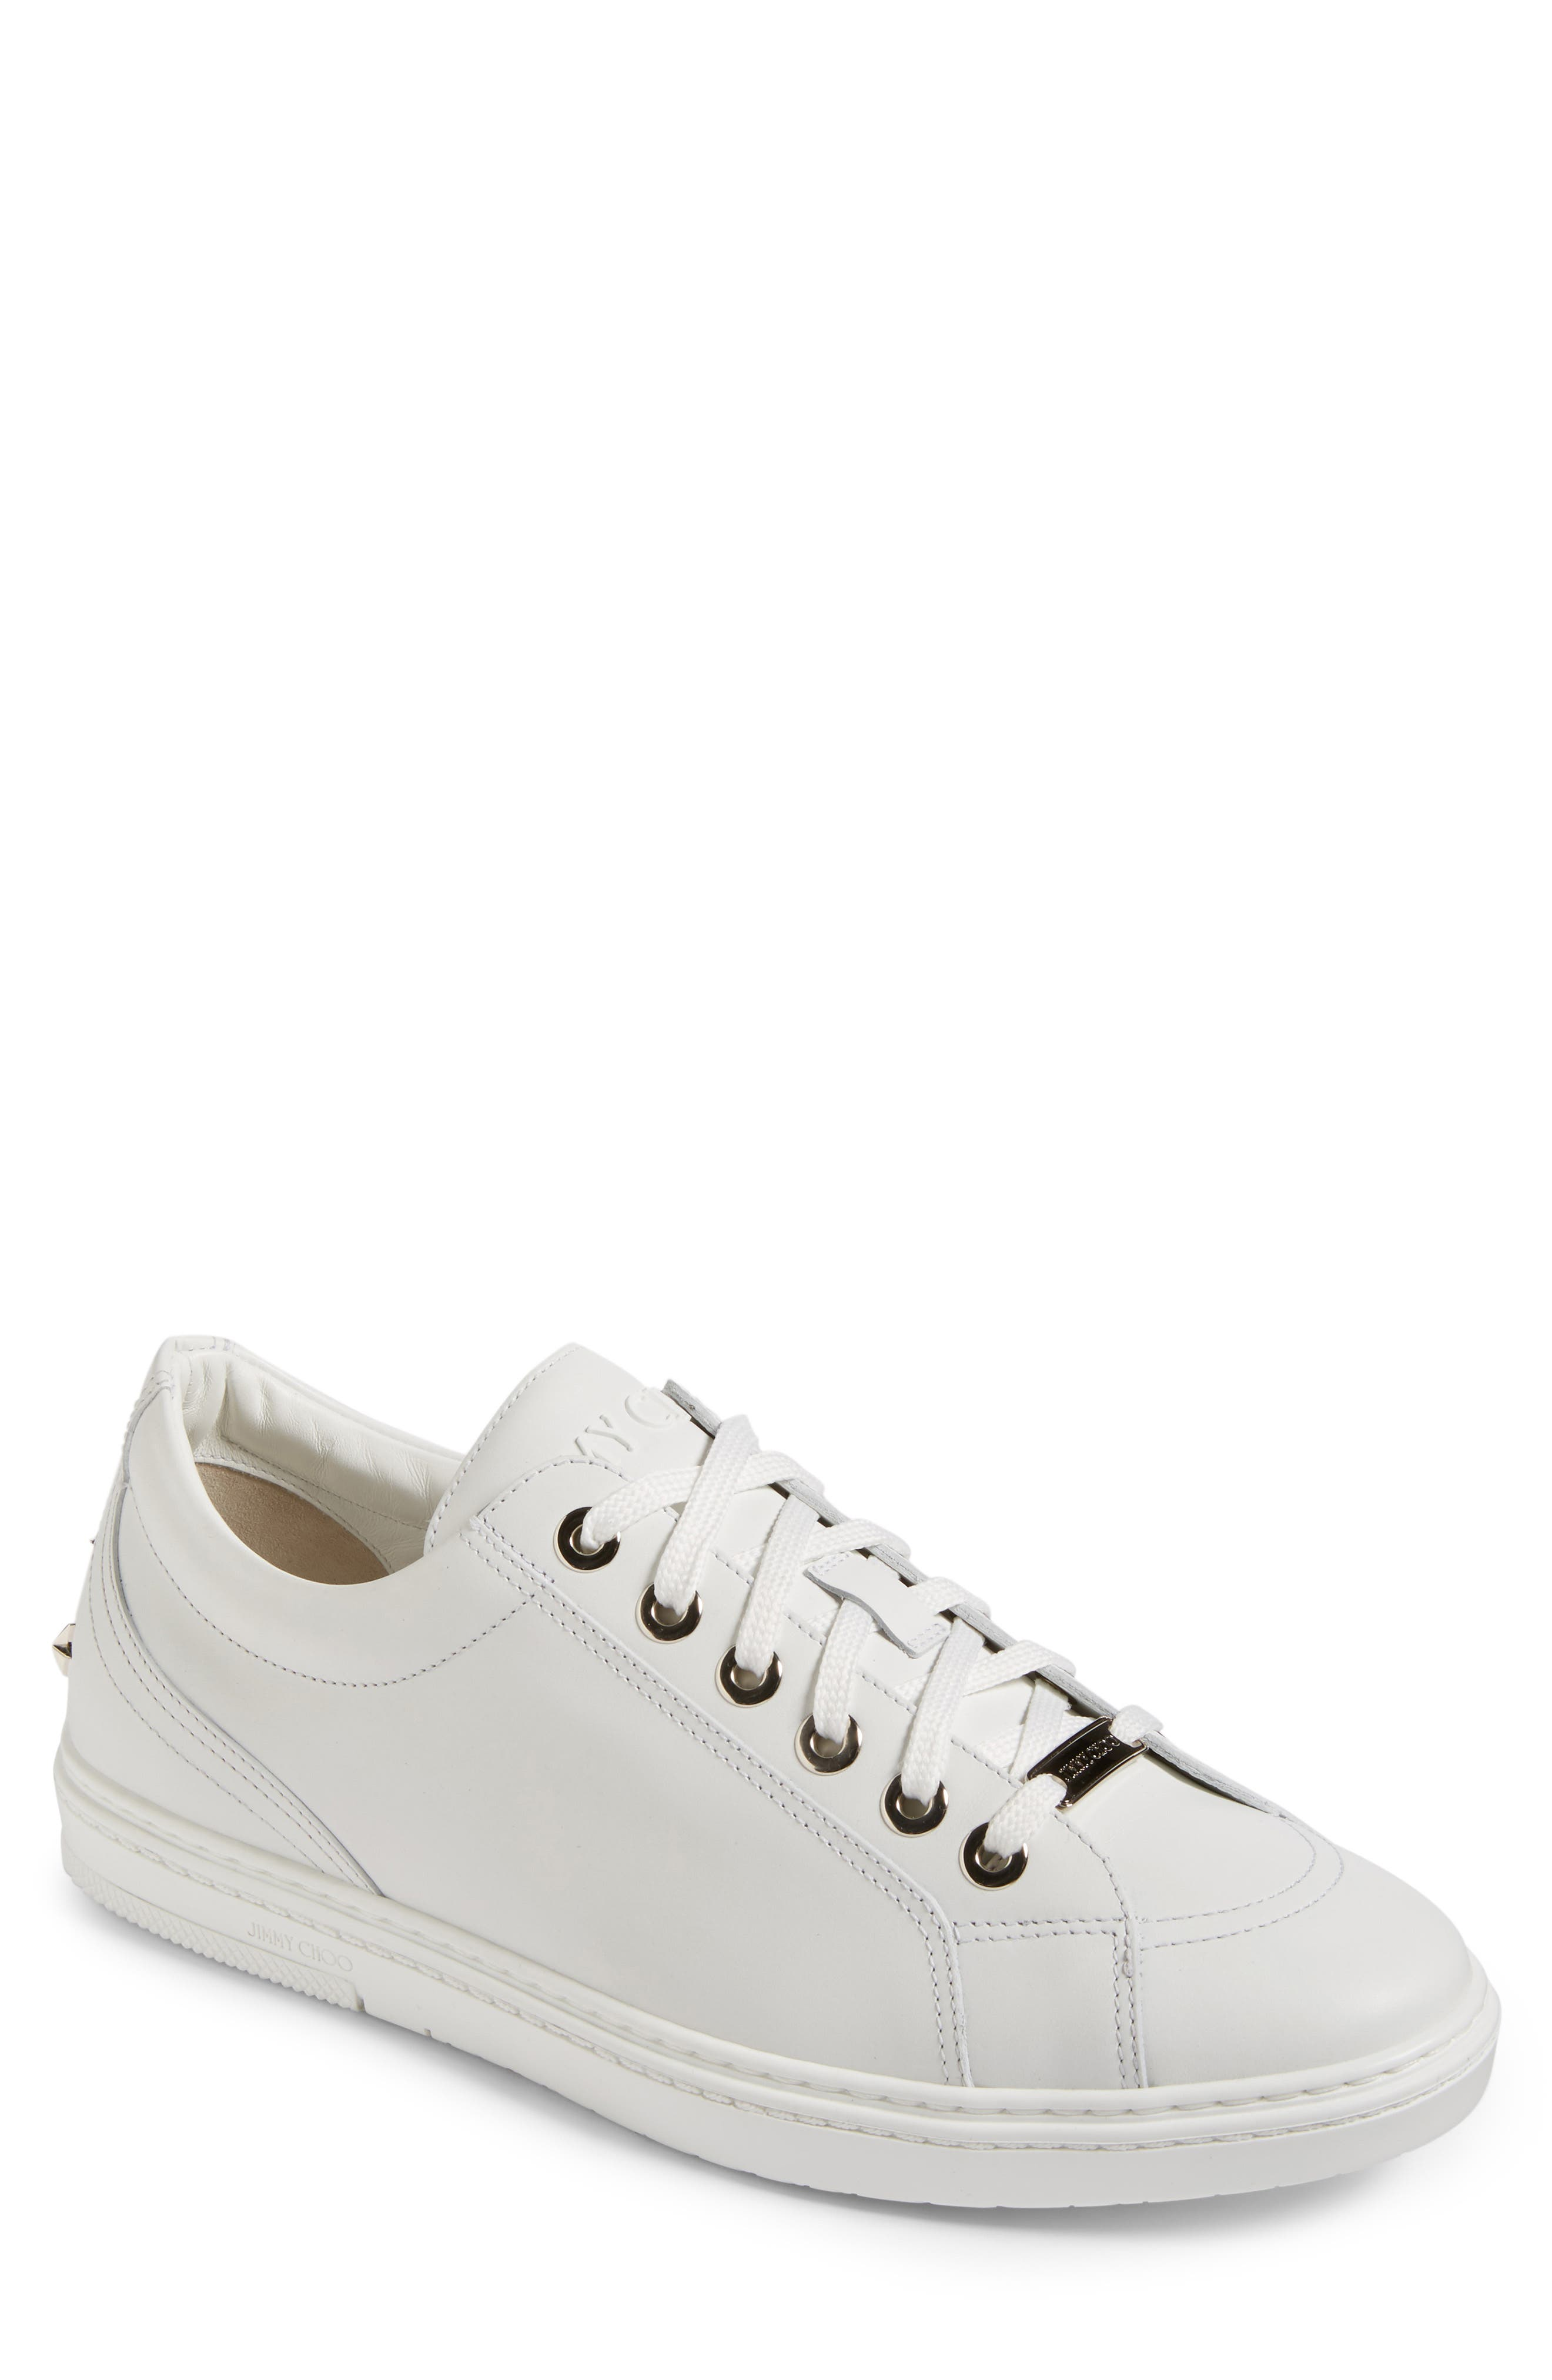 Cash Star Sneaker,                             Main thumbnail 1, color,                             Ultra White